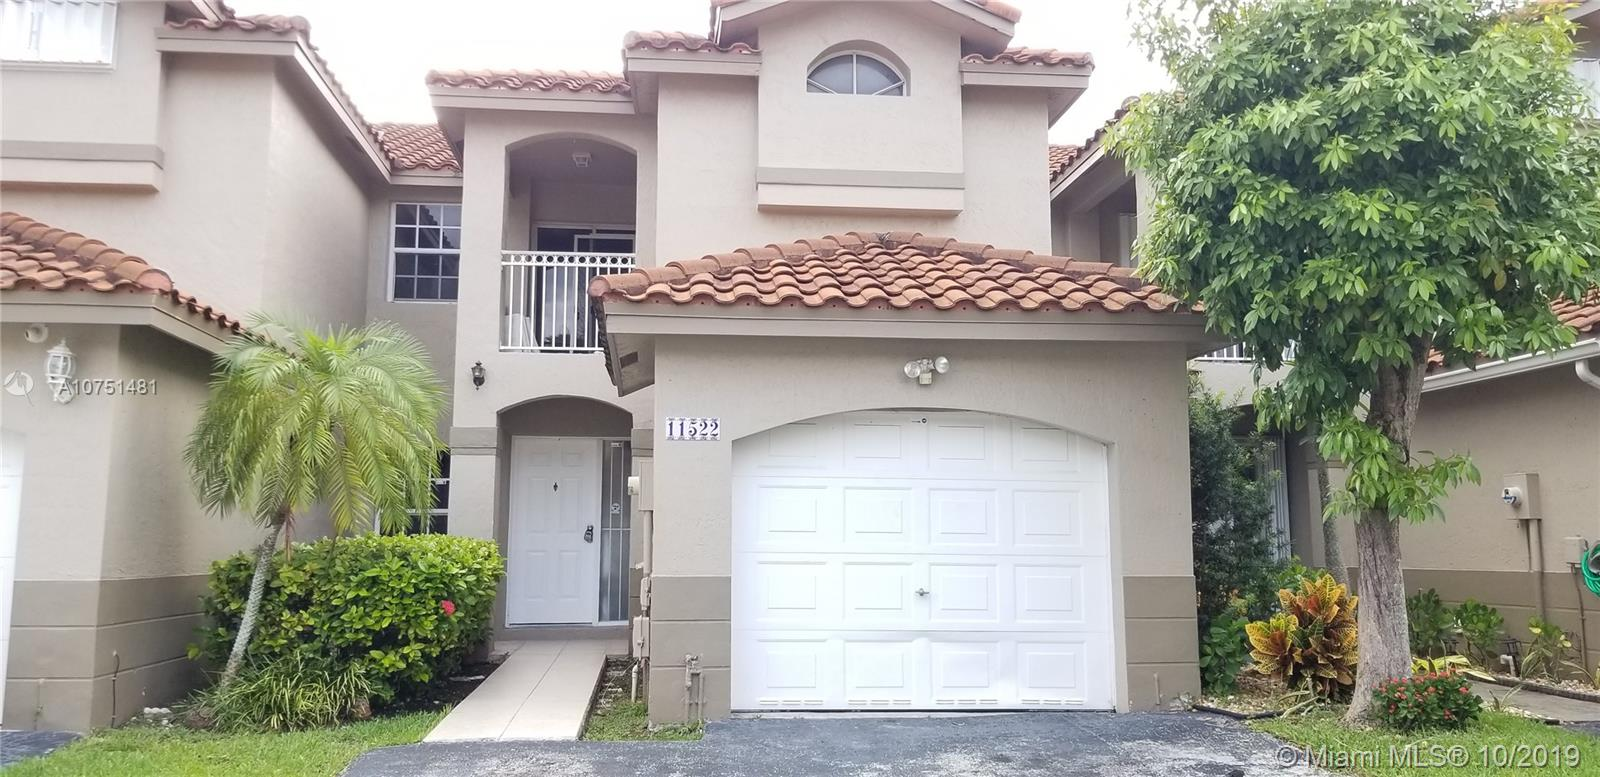 11522 SW 148th Path  For Sale A10751481, FL